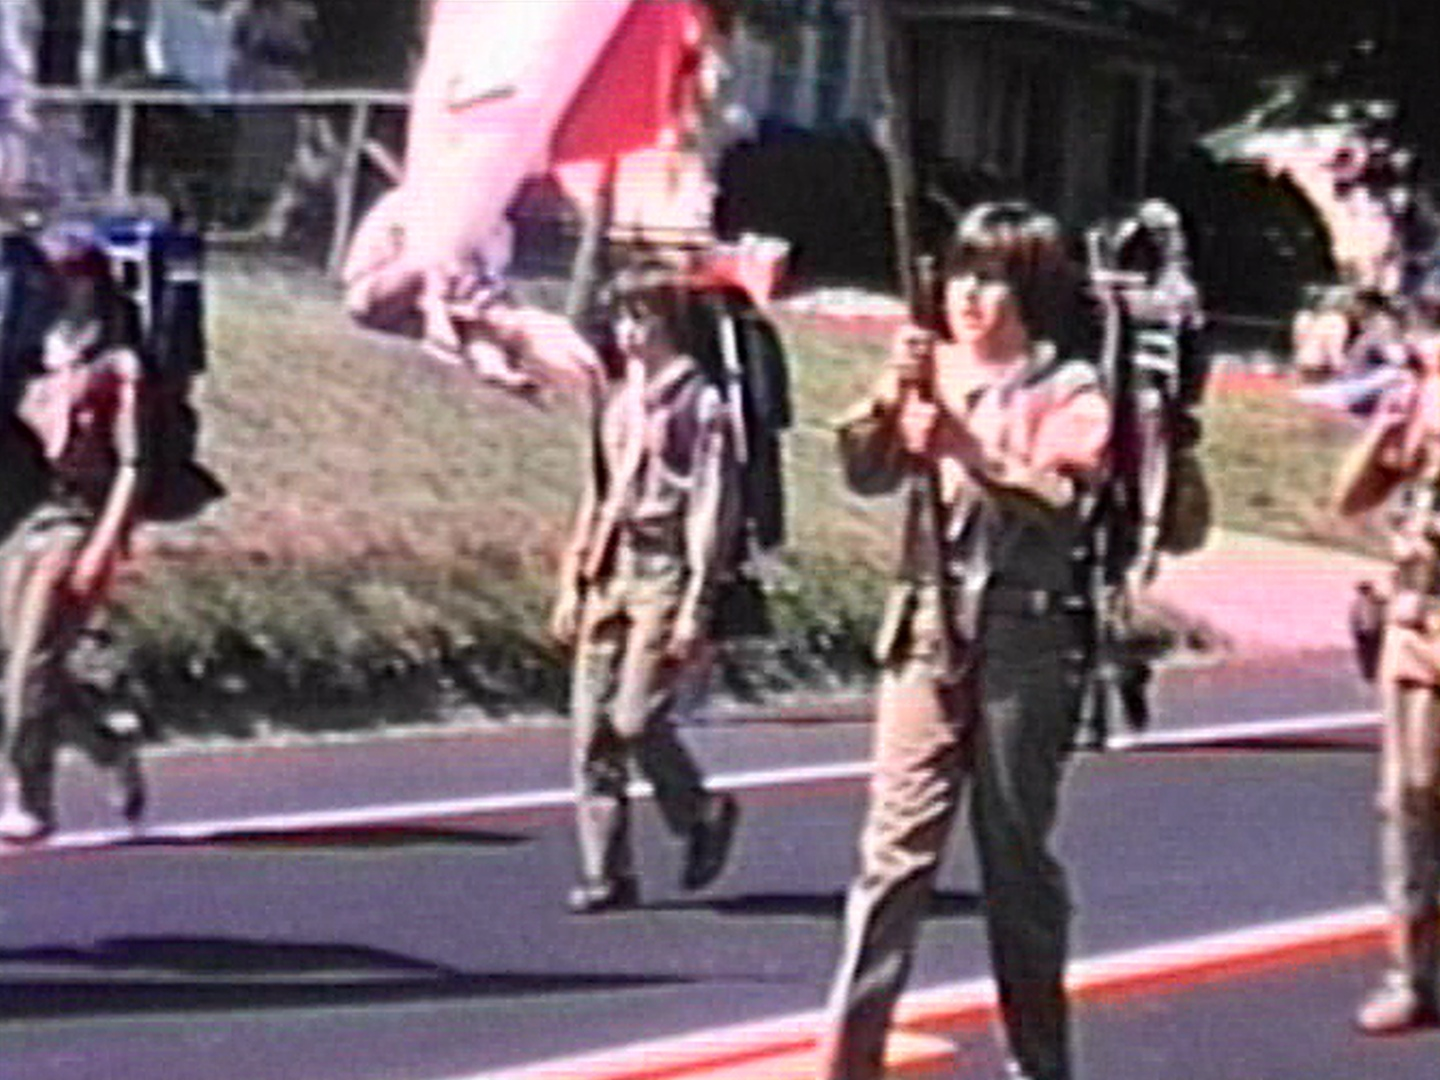 Boy Scouts parade 1976 in Ringoes, NJ.